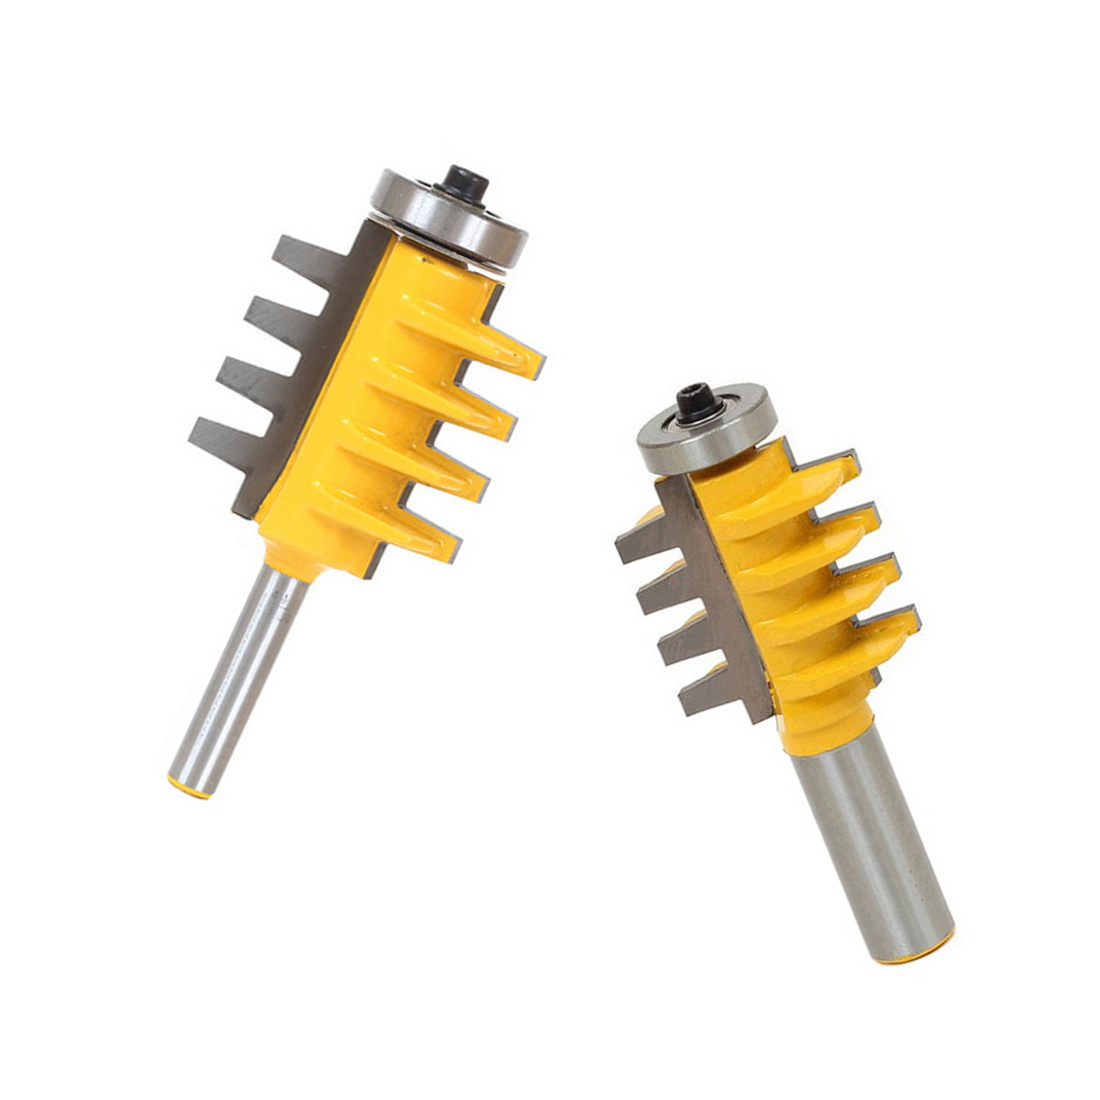 Reversible Finger Joint Glue Router Bit Cone Tenon Woodwork Cutter Power Tools-1/2, 1/4 ,8mm Shank